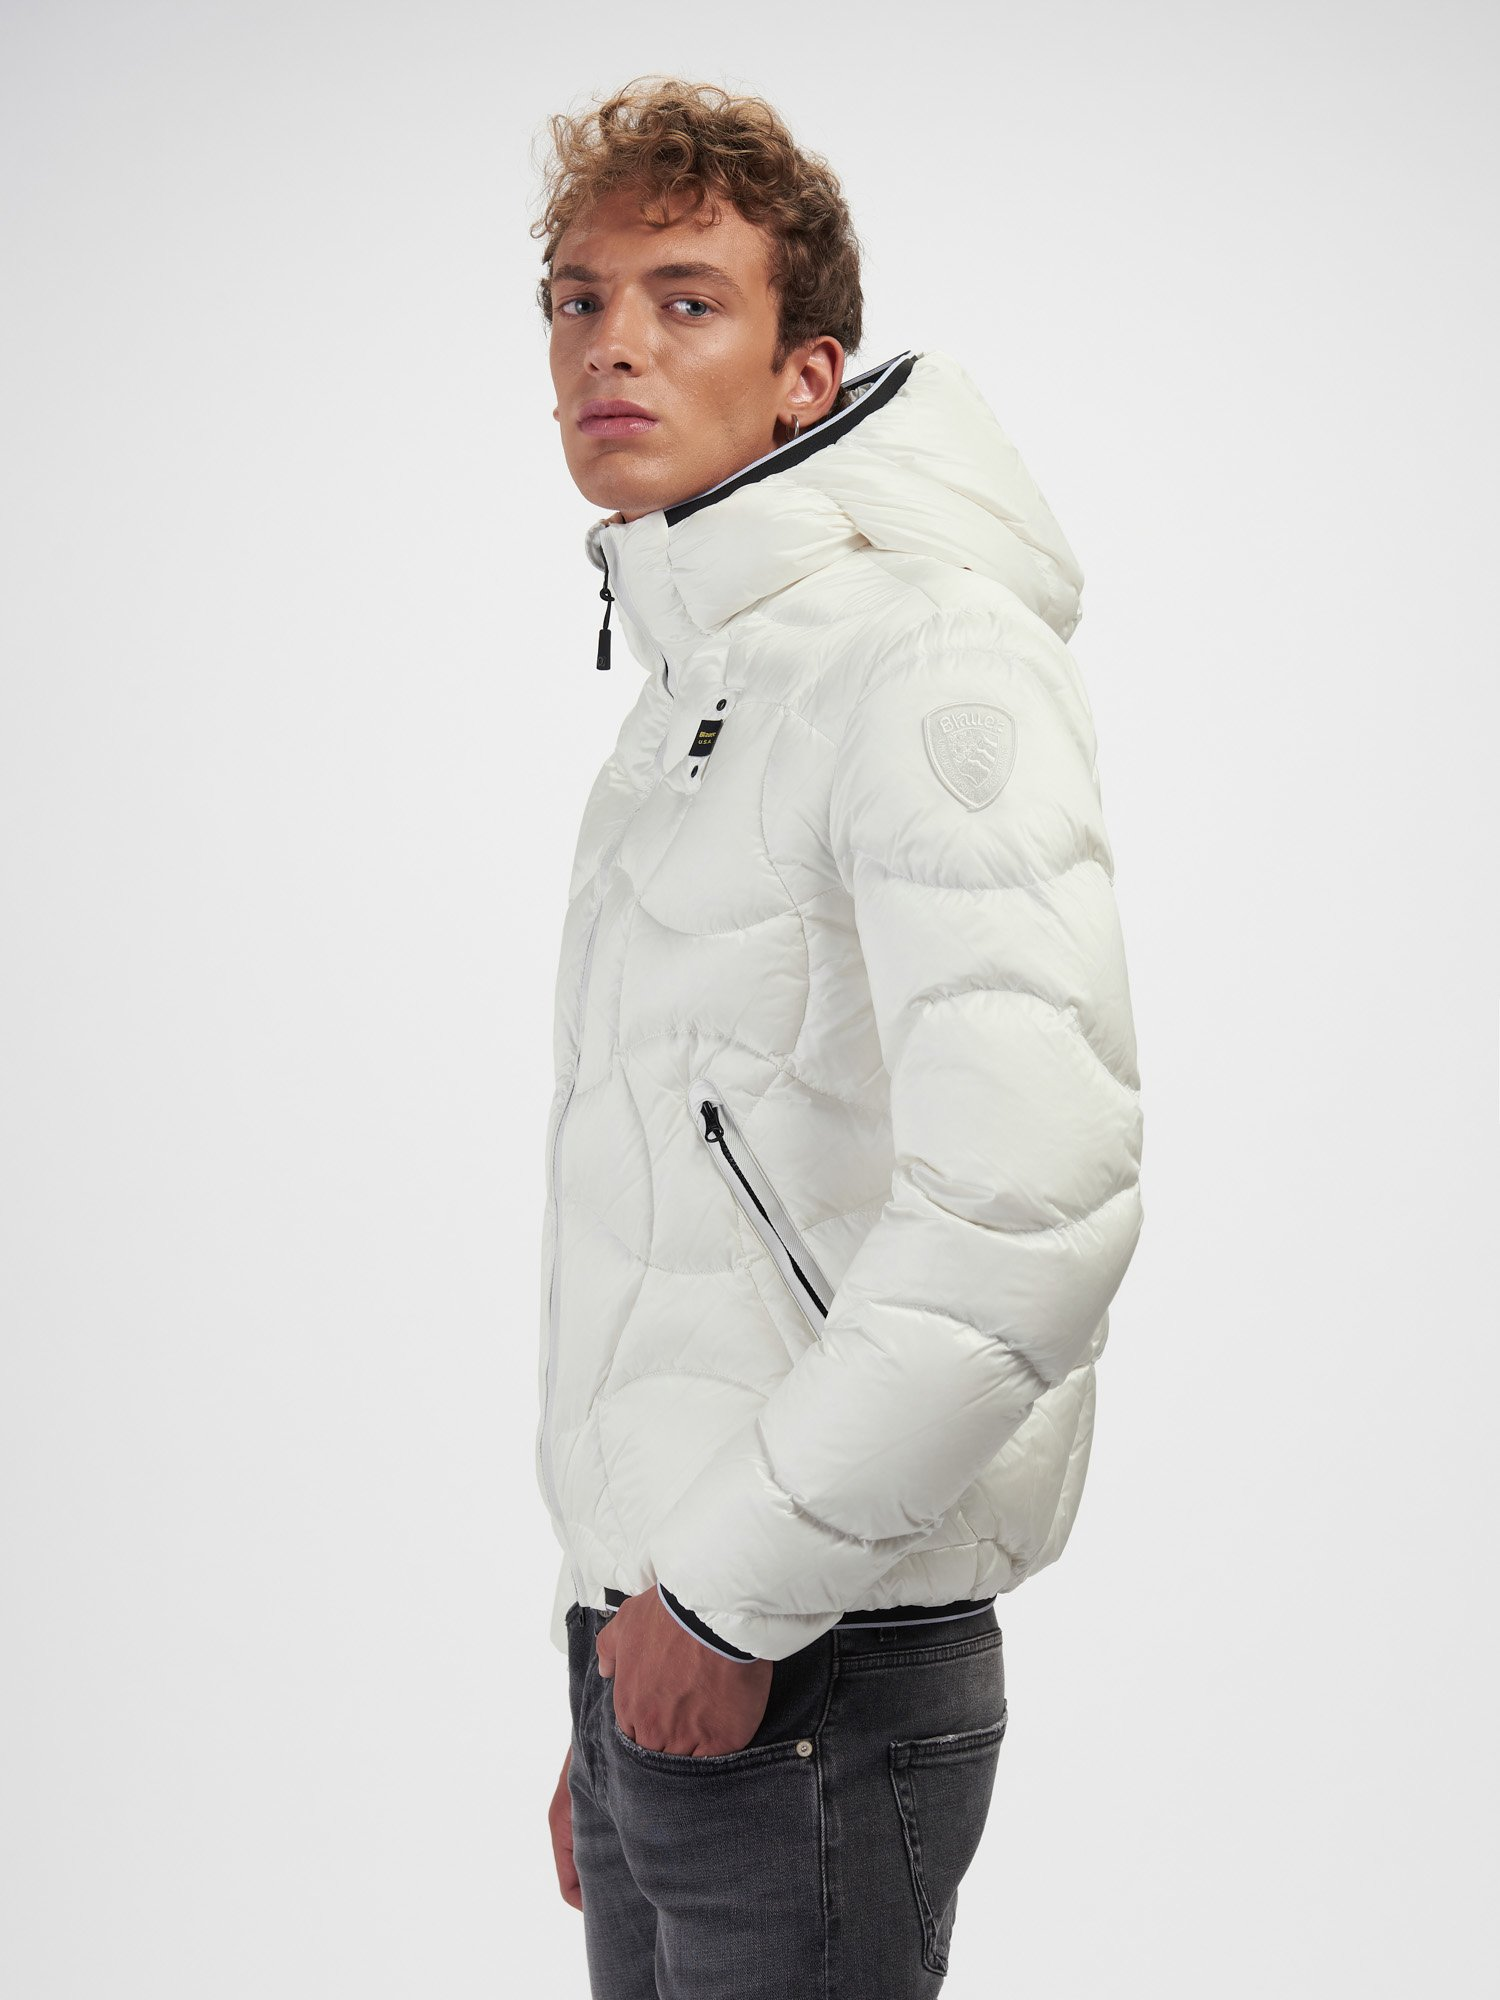 Blauer - BENJAMIN CROSSED-WAVE DOWN JACKET - Snow White - Blauer